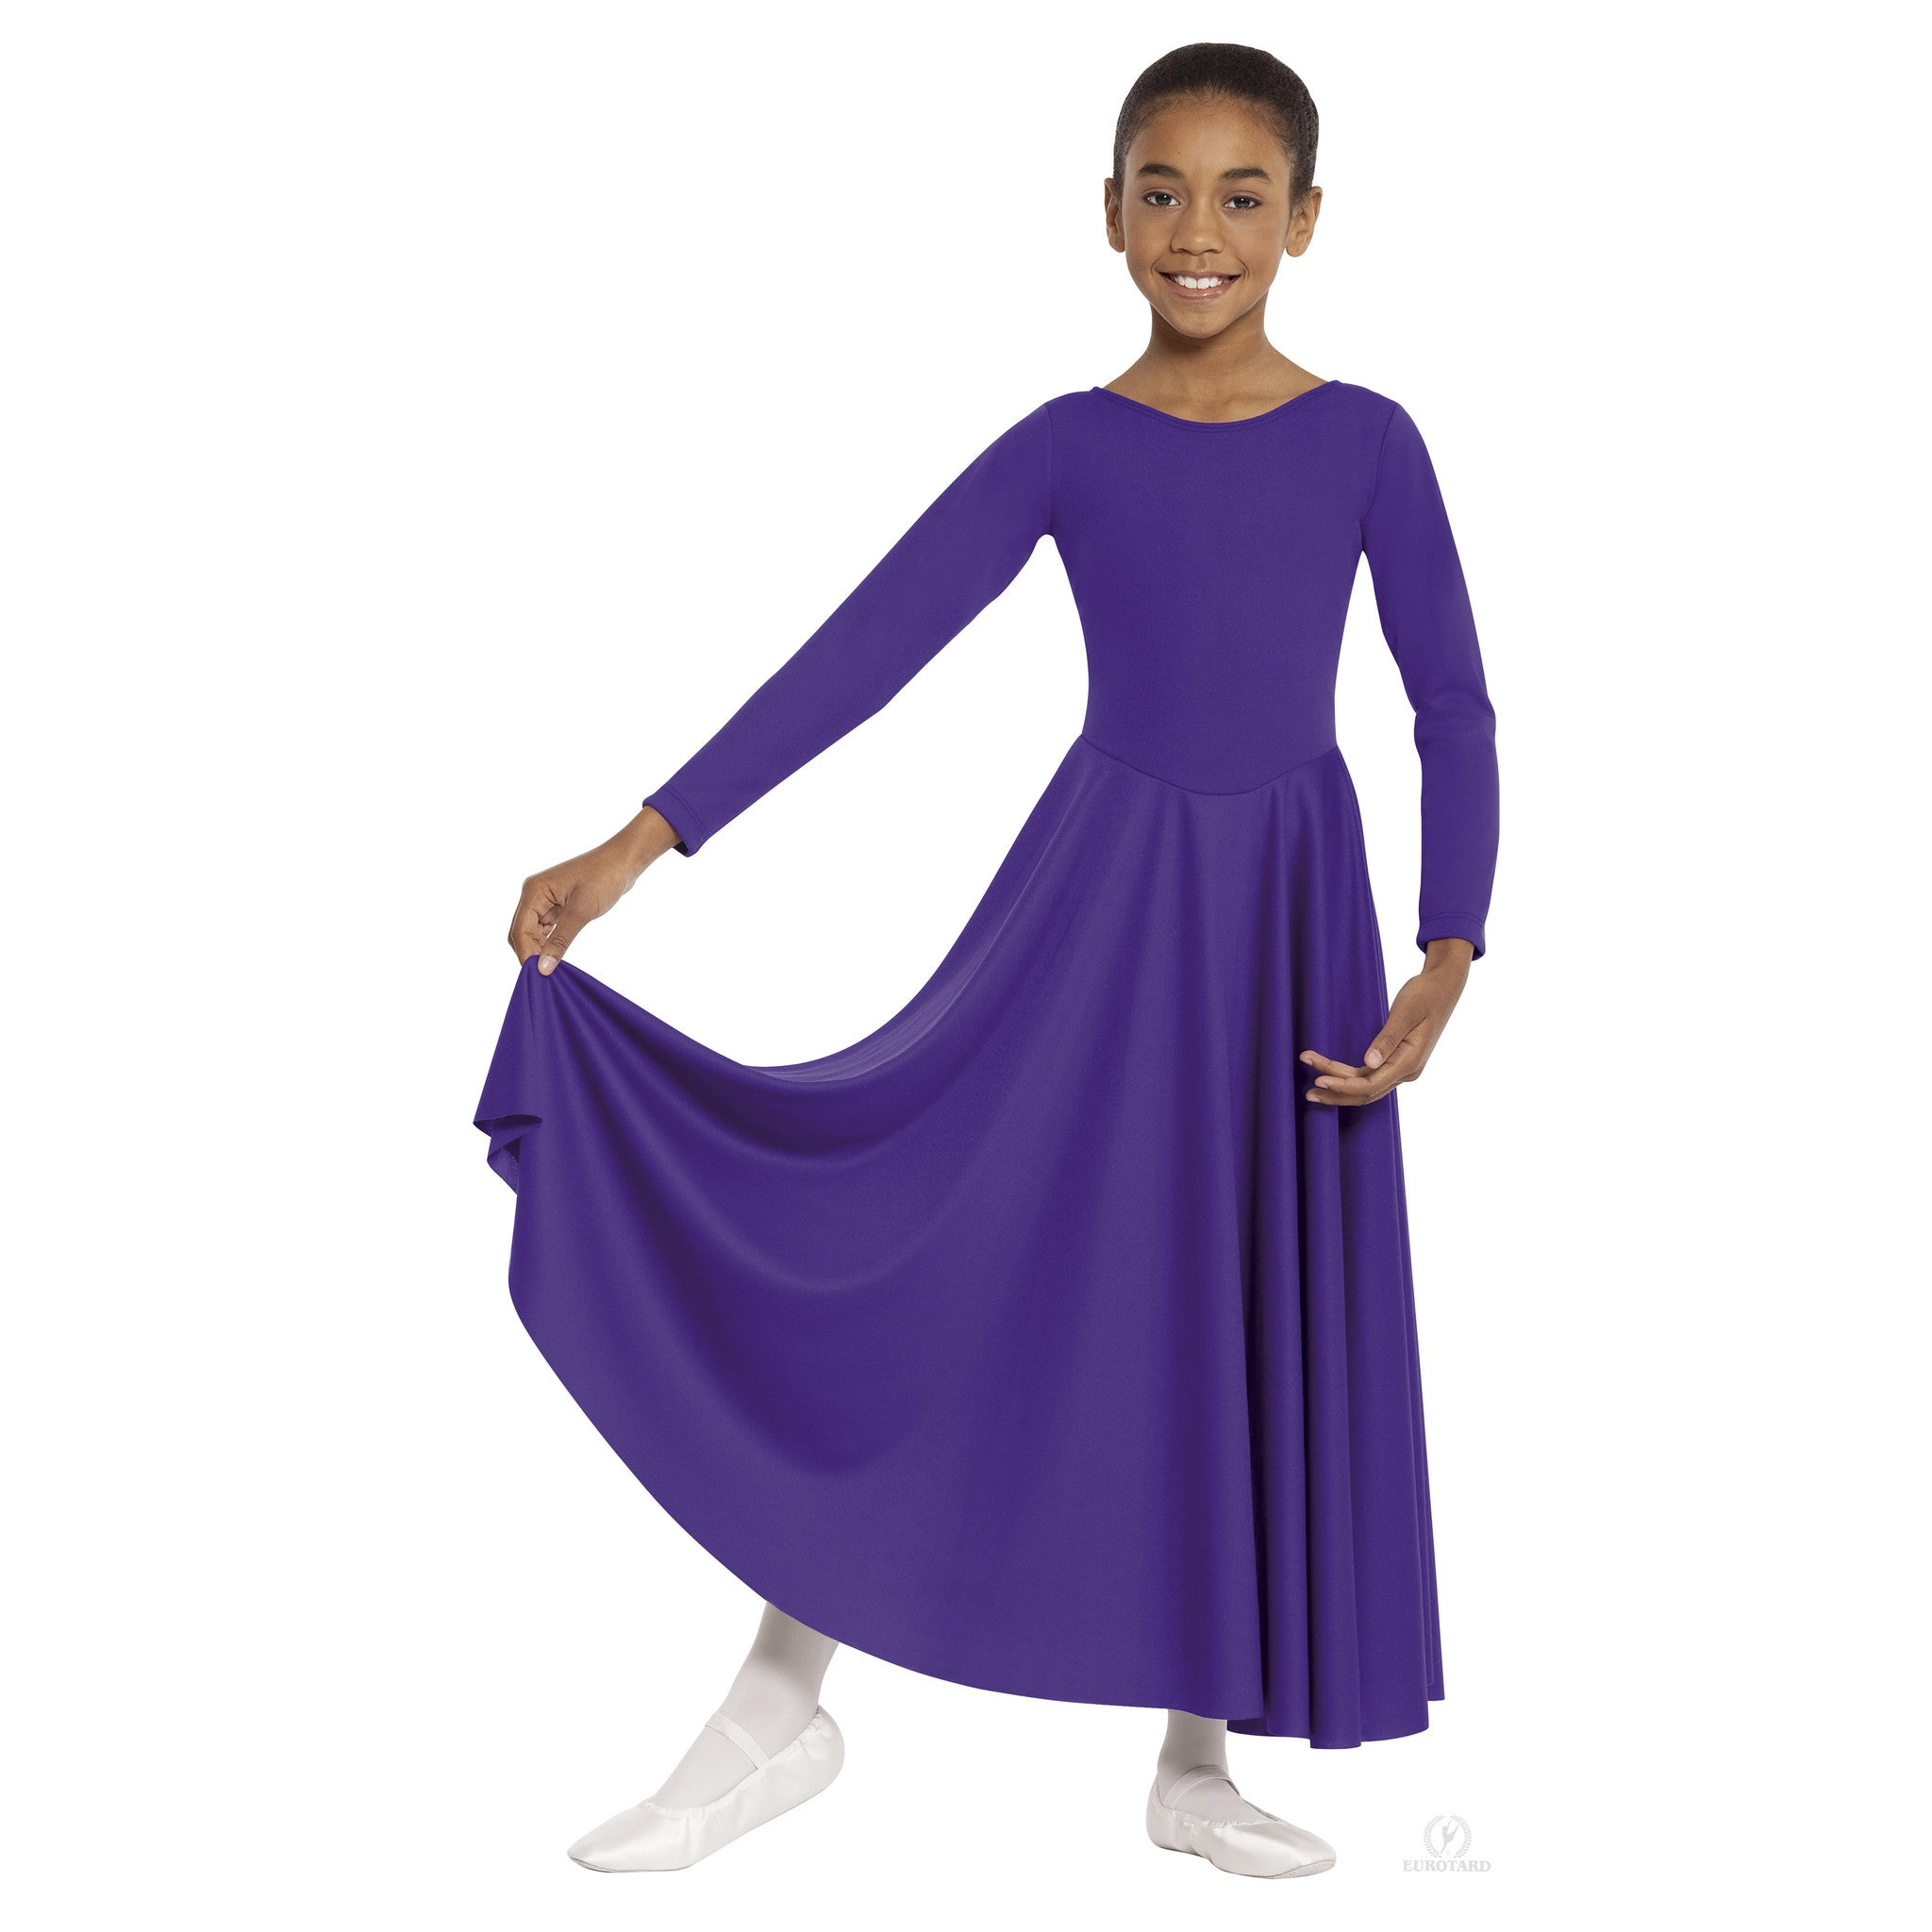 Dress Plus And Blue Polyester Praise Sizes Adult 13524 PurpleRoyal l3T1cuKJF